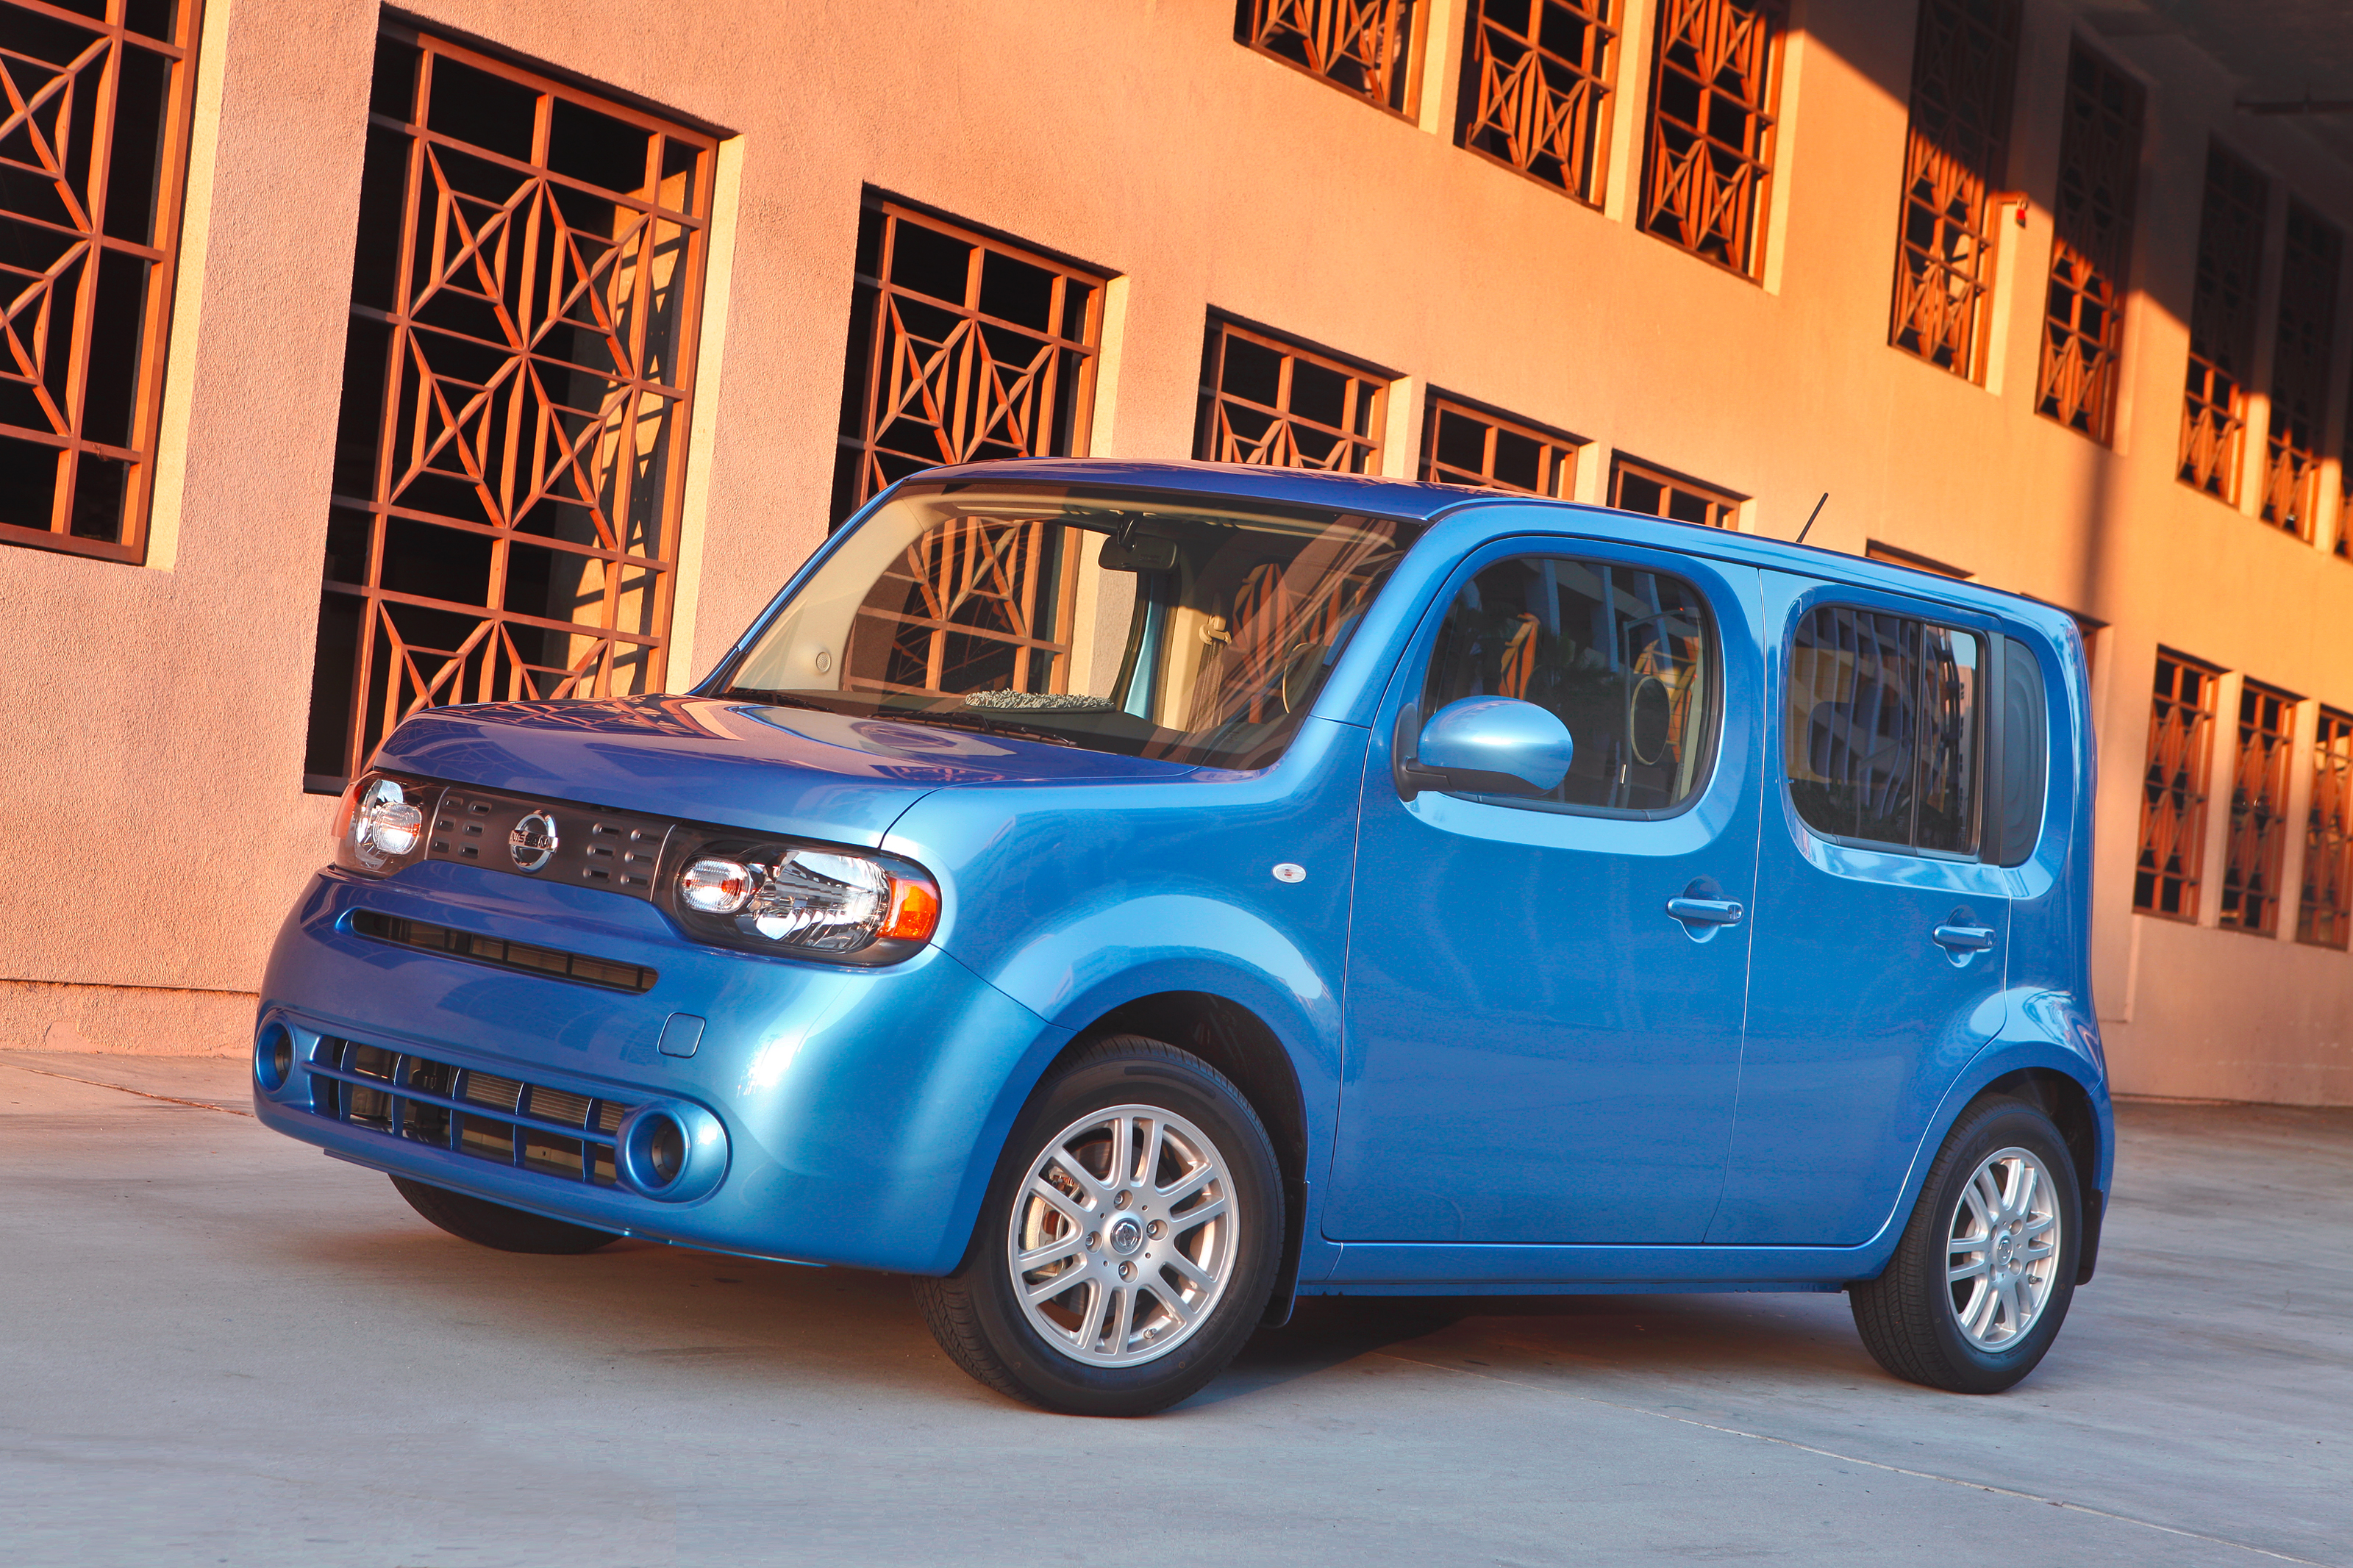 2013 Nissan Cube Information And Photos Zombiedrive Engine Diagram 9